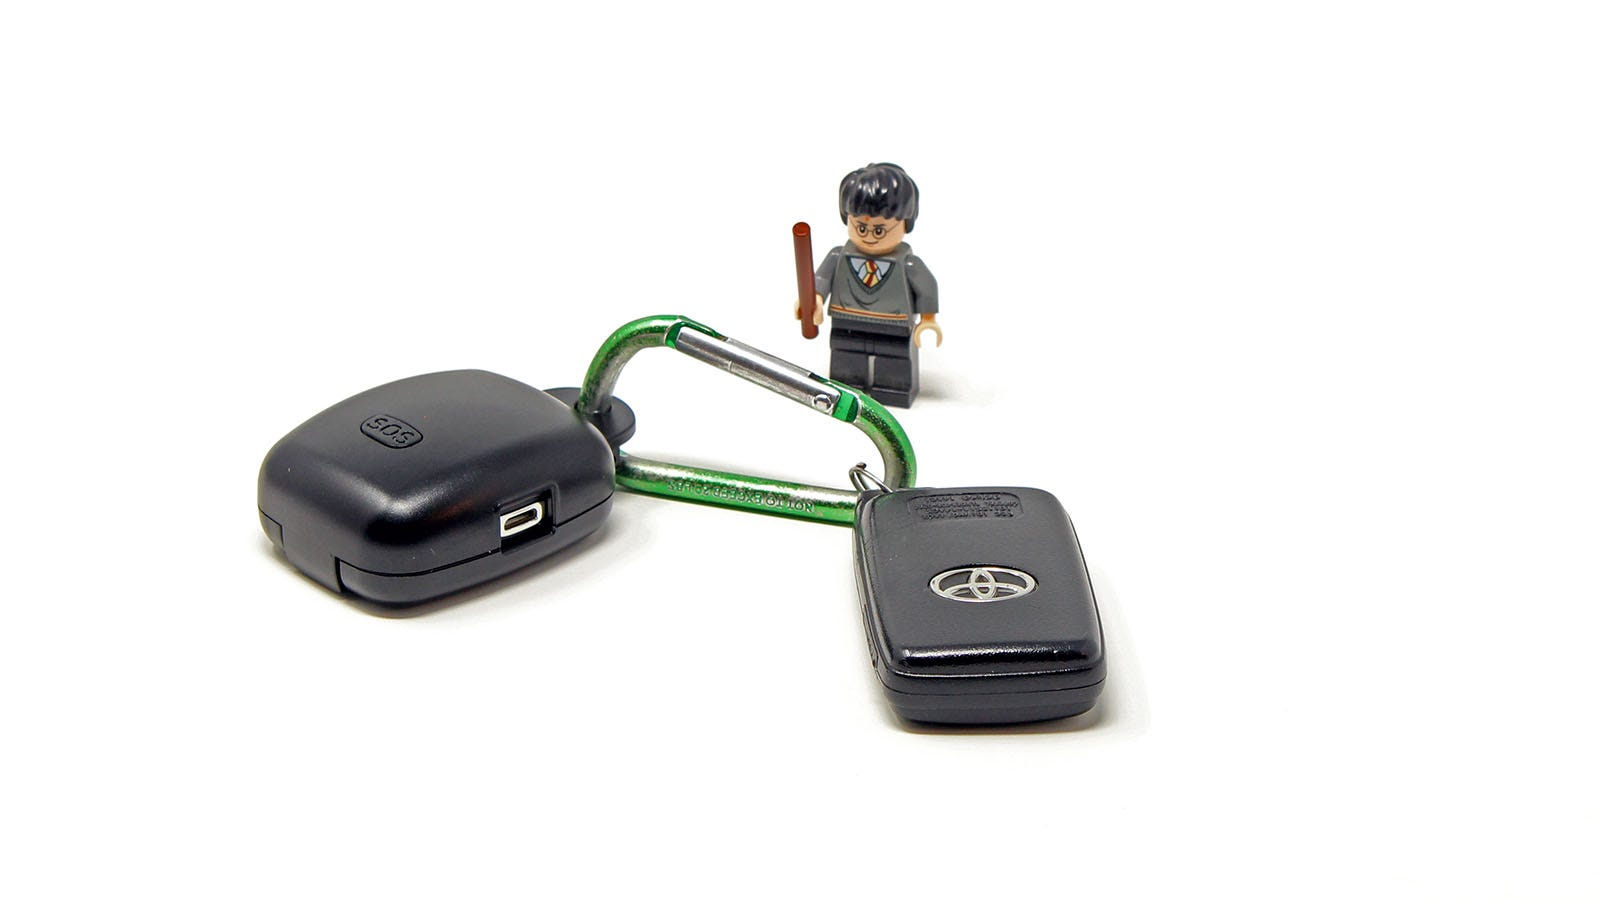 The GeoZilla GPS tracker attached to a similar sized key fob near a Harry Potter lego minifig.